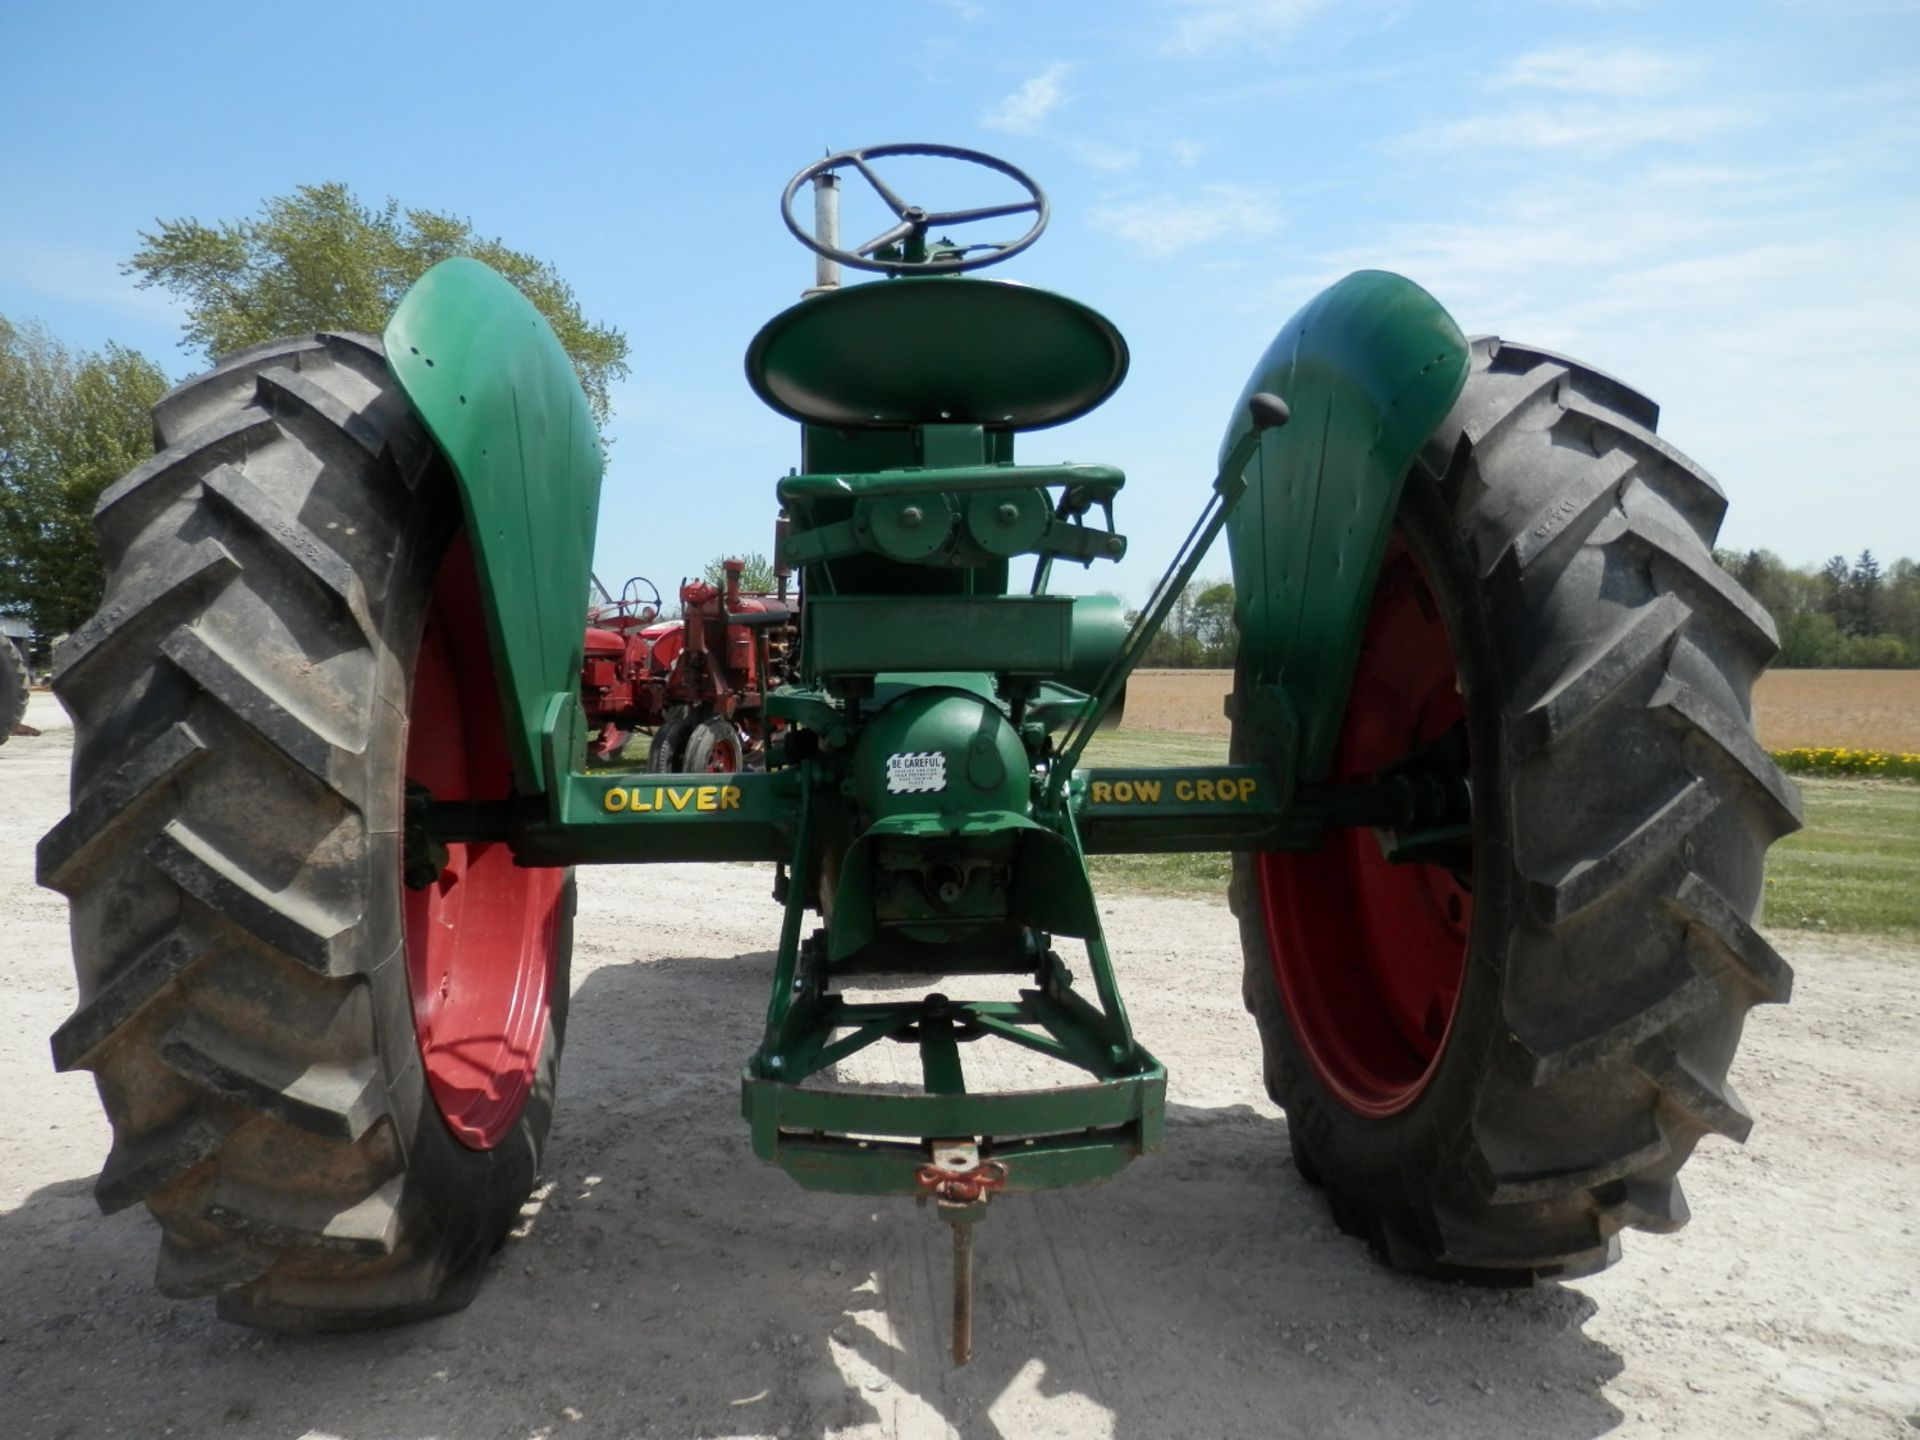 OLIVER 88 ROW CROP TRACTOR - Image 4 of 10